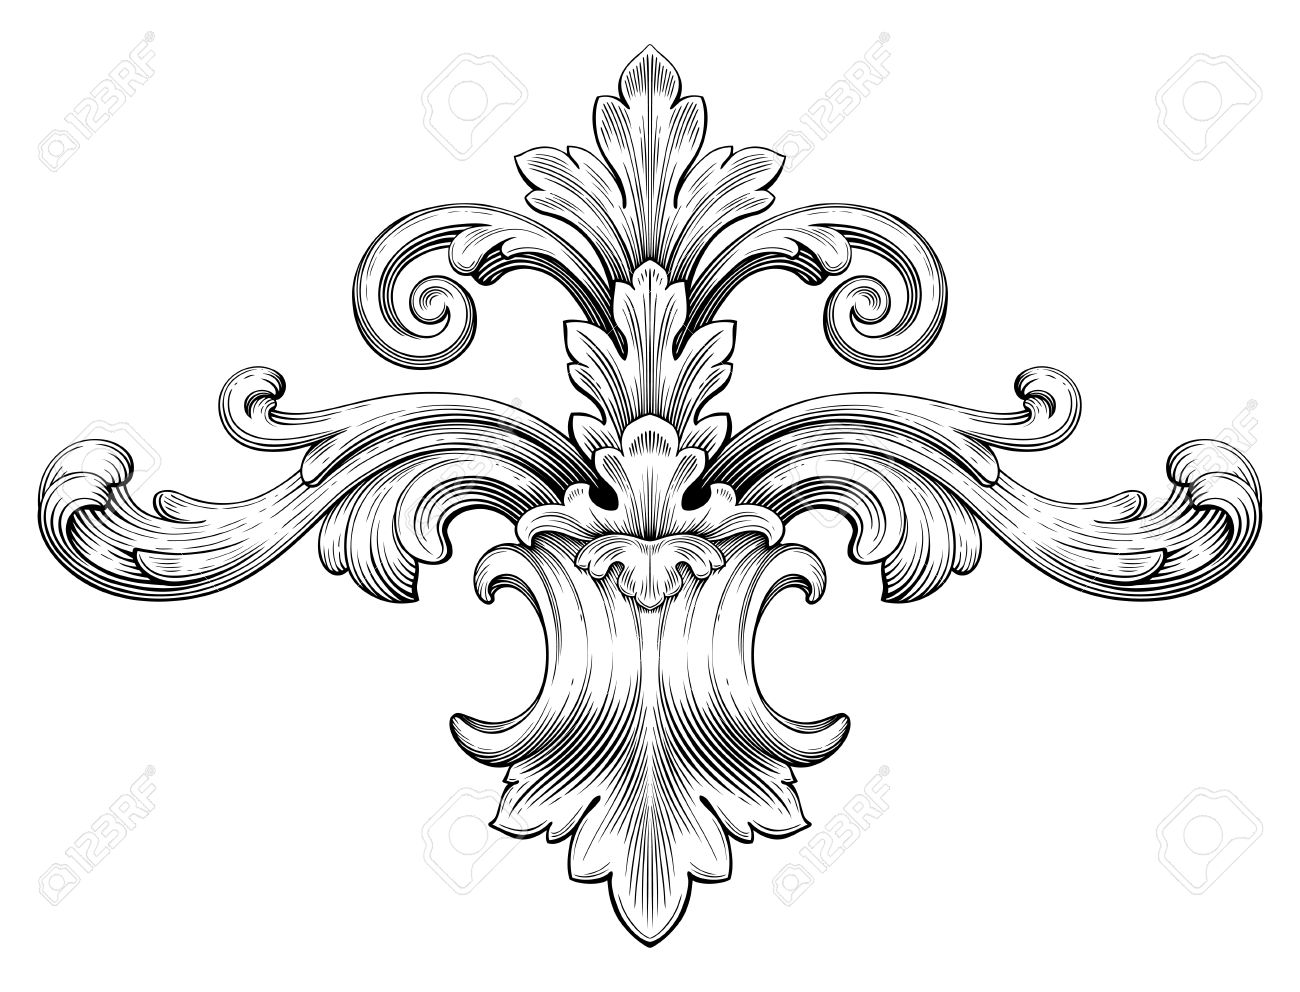 Engraving clipart scroll Scroll Engraving Scroll Baroque Engraving